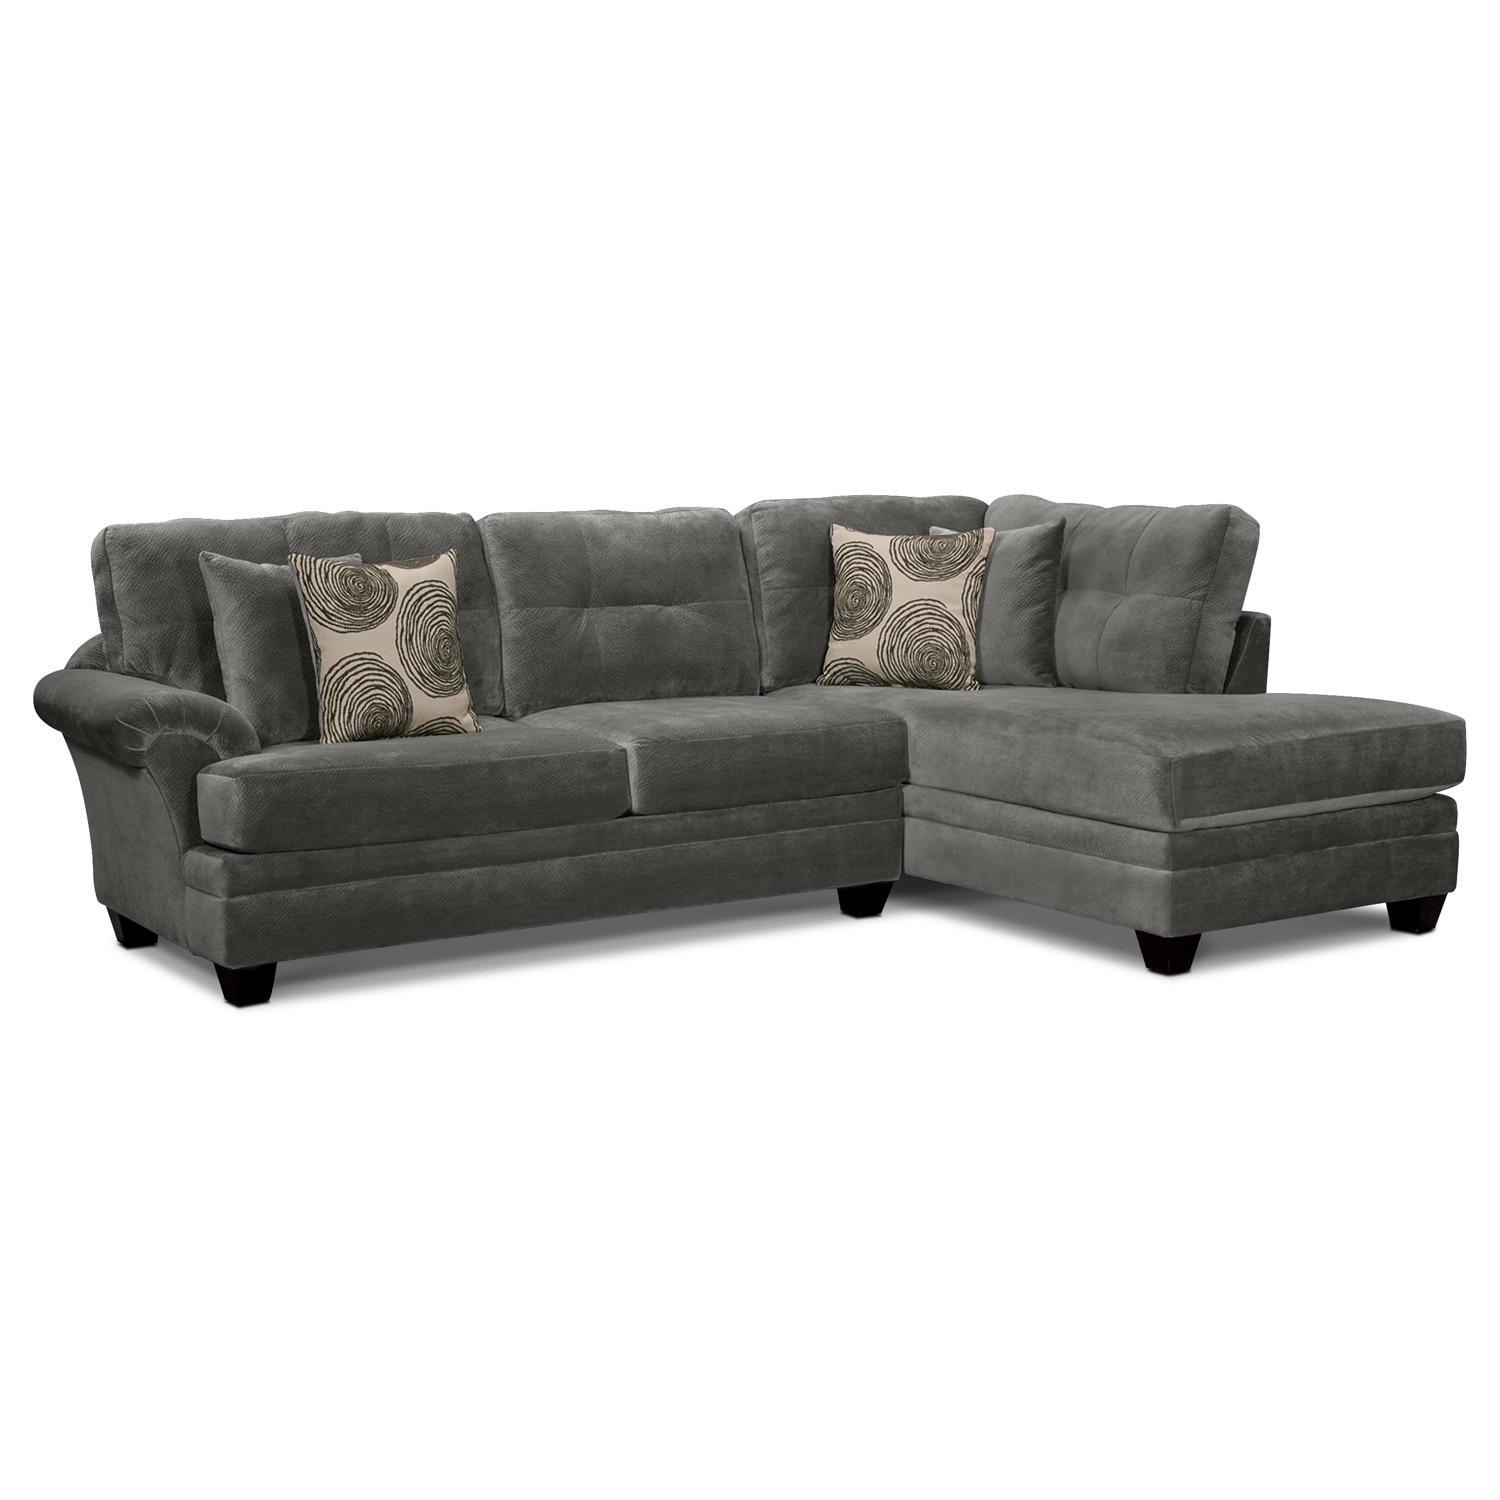 cordelle 2 piece sectional with chaise american signature furniture rh americansignaturefurniture com American Signature Furniture Living Room Styles american signature furniture living room tables